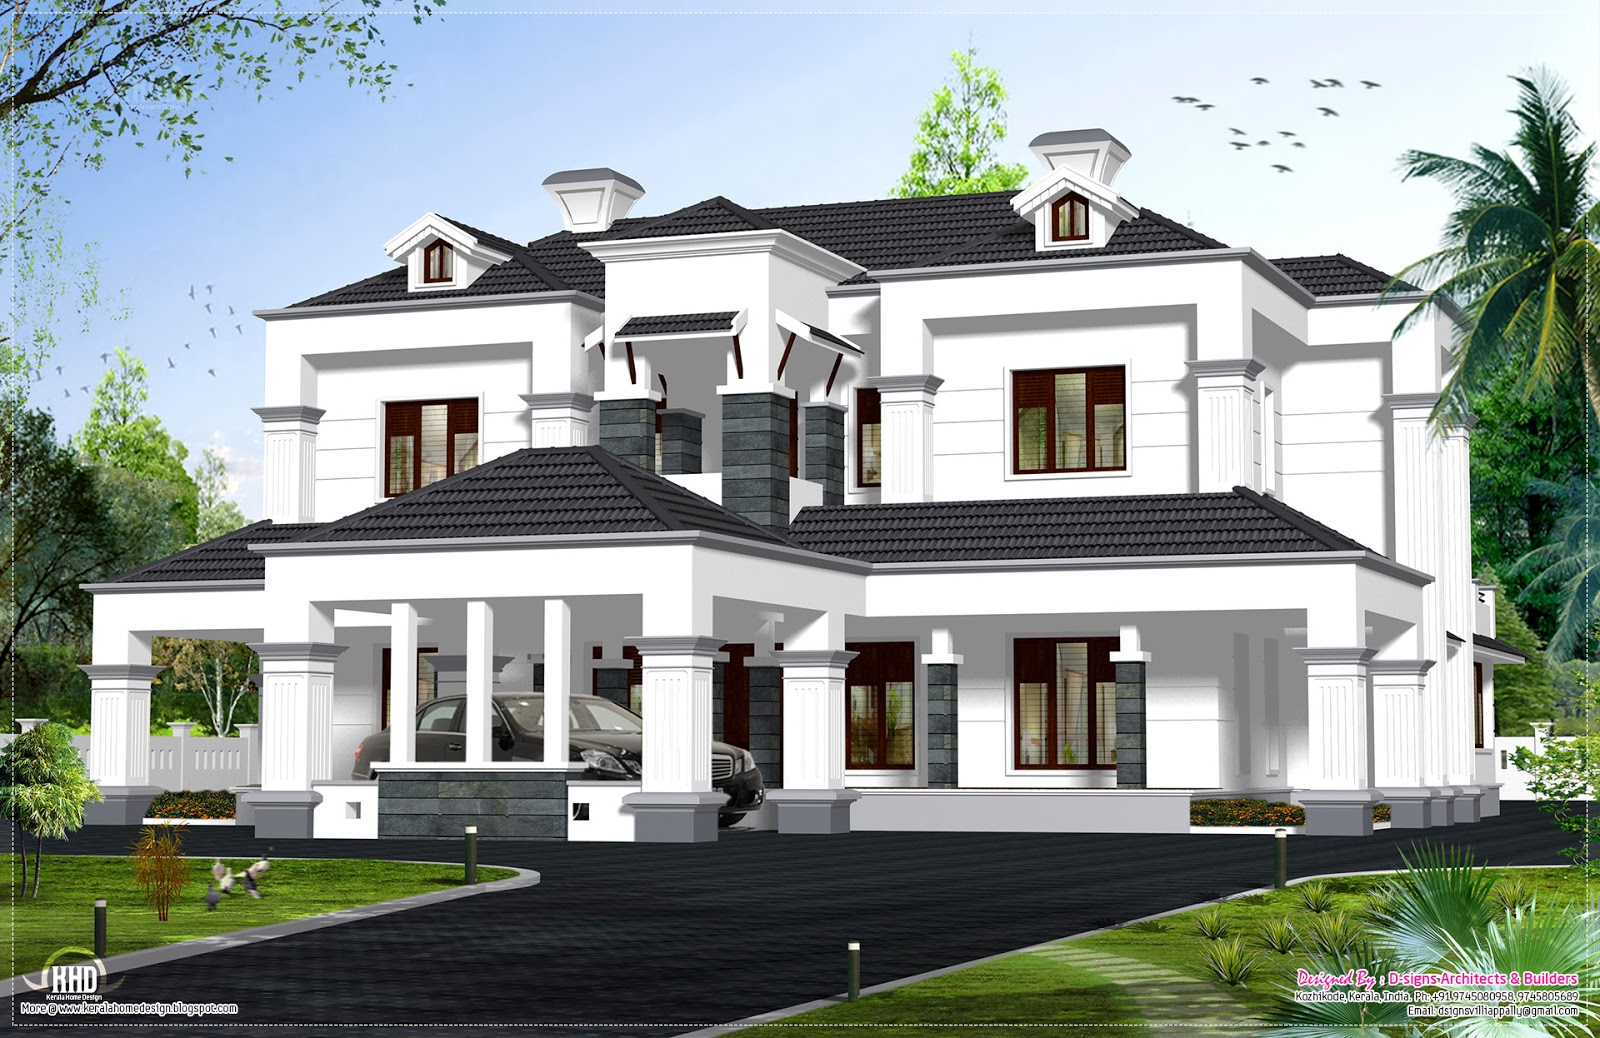 Victorian model house exterior kerala home design and for Latest model house design